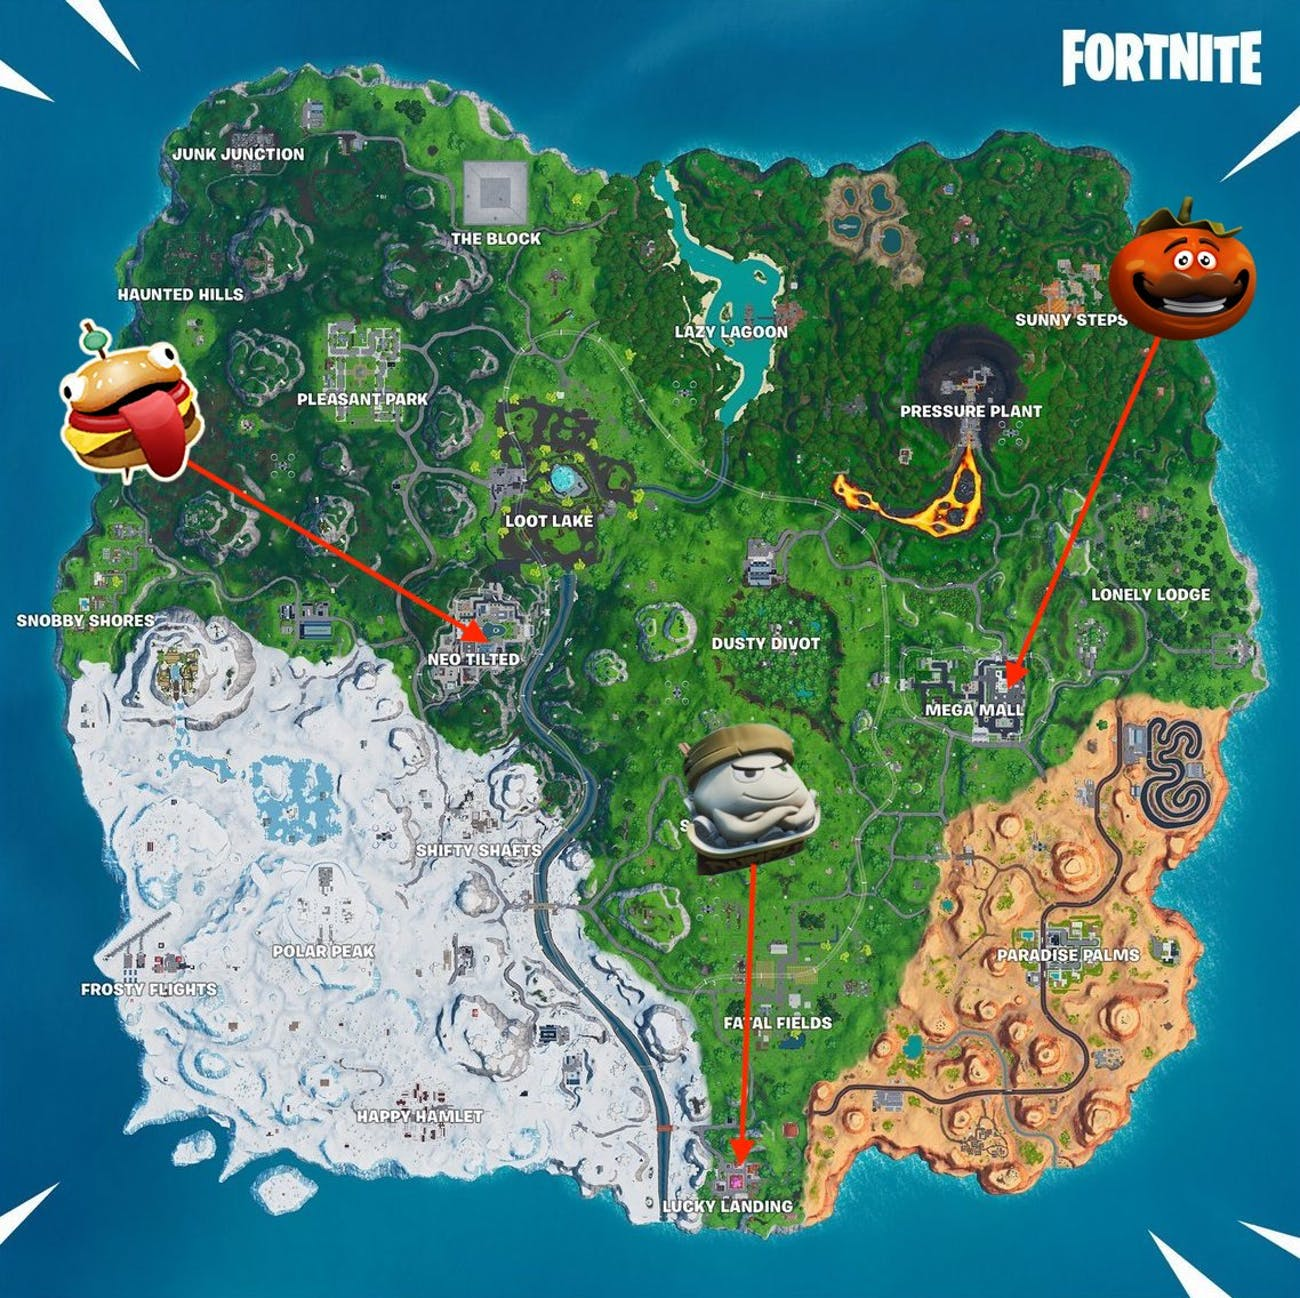 Fortnite Holographic Tomato Head, Durr Burger Head, and Dumpling